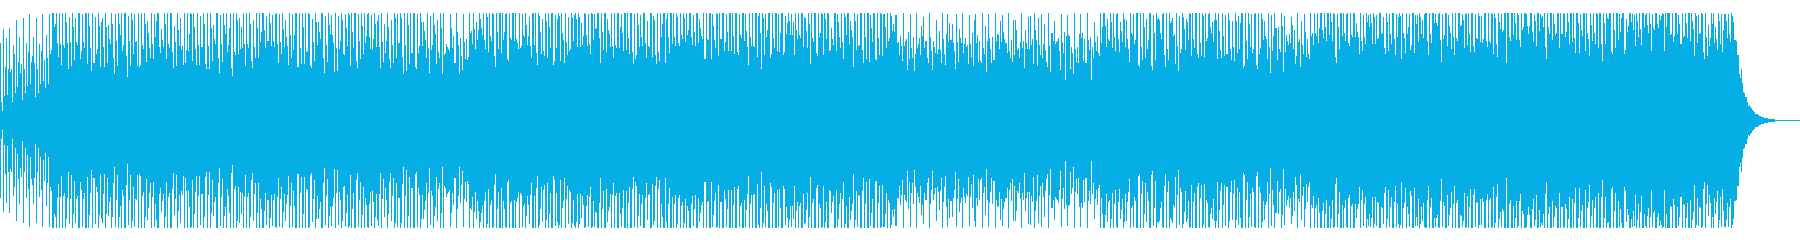 The Strategy's reproduced waveform